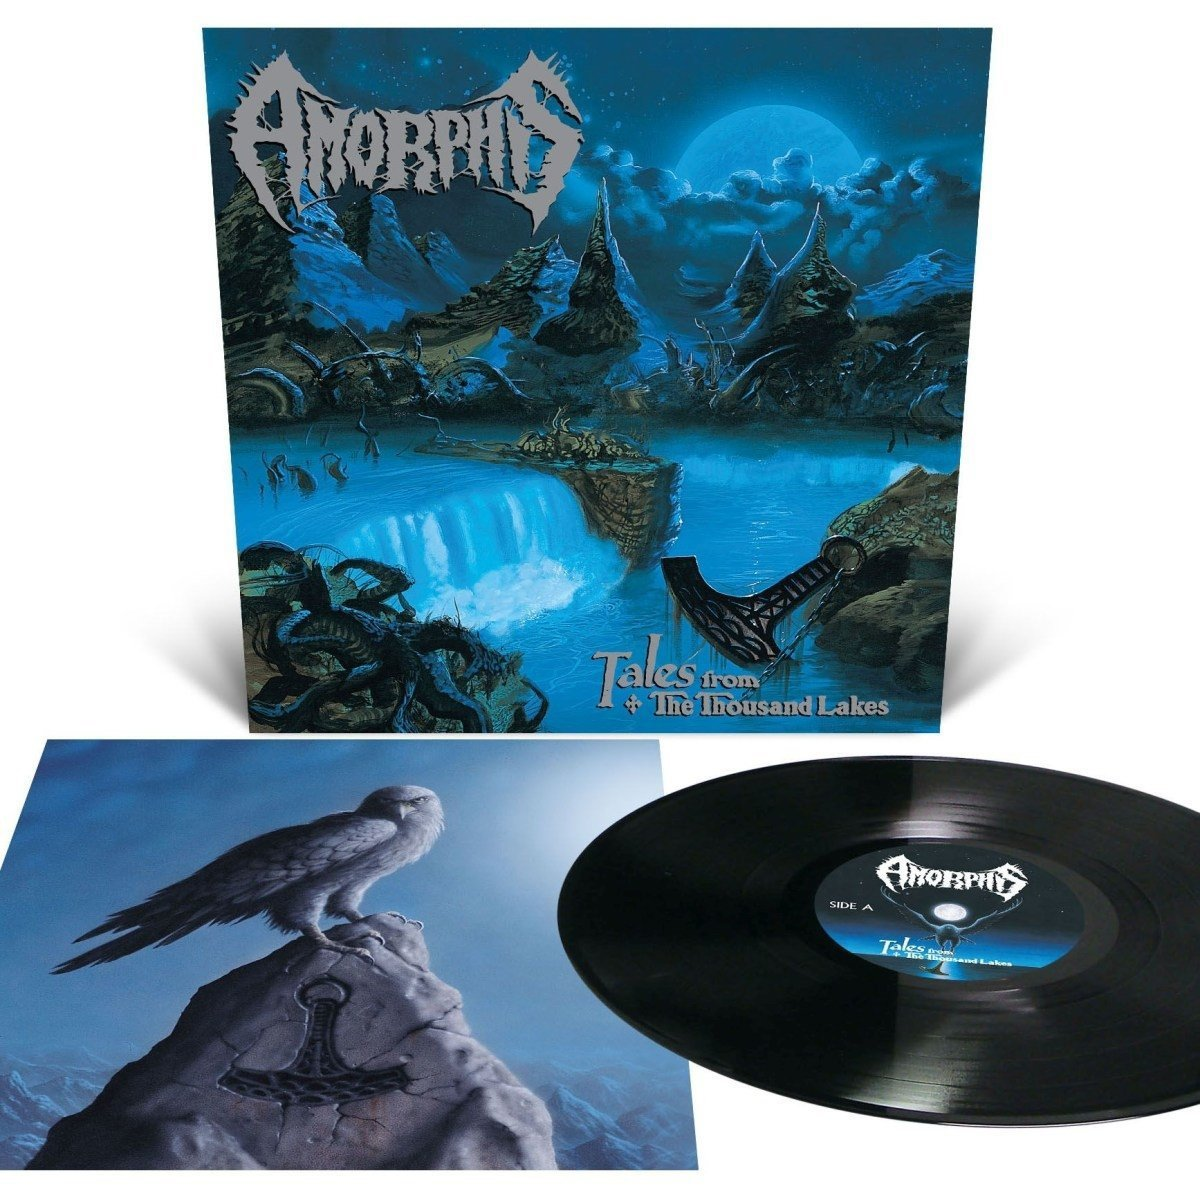 Vinilo : Amorphis - Tales From The Thousand Lakes (Reissue)